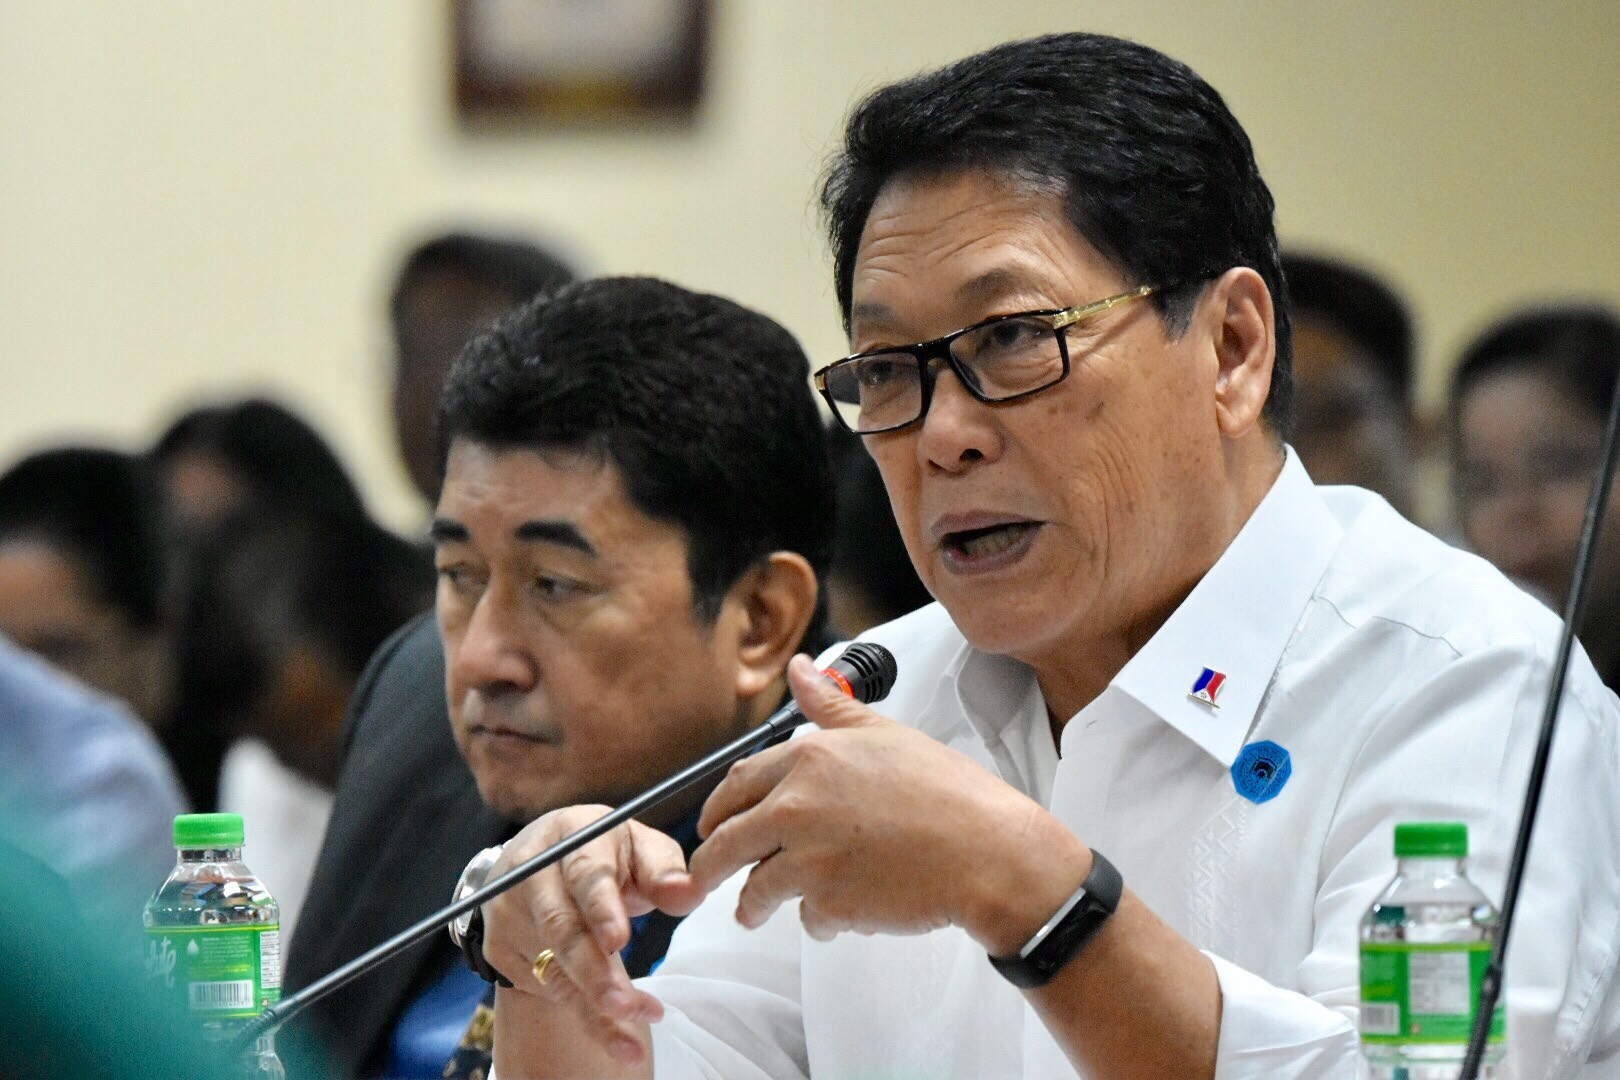 WORKERS' PLIGHT. Labor Secretary Silvestre Bello III gives updates on the welfare of overseas Filipino workers at a Senate hearing on May 23, 2018. Photo by Angie de Silva/Rappler